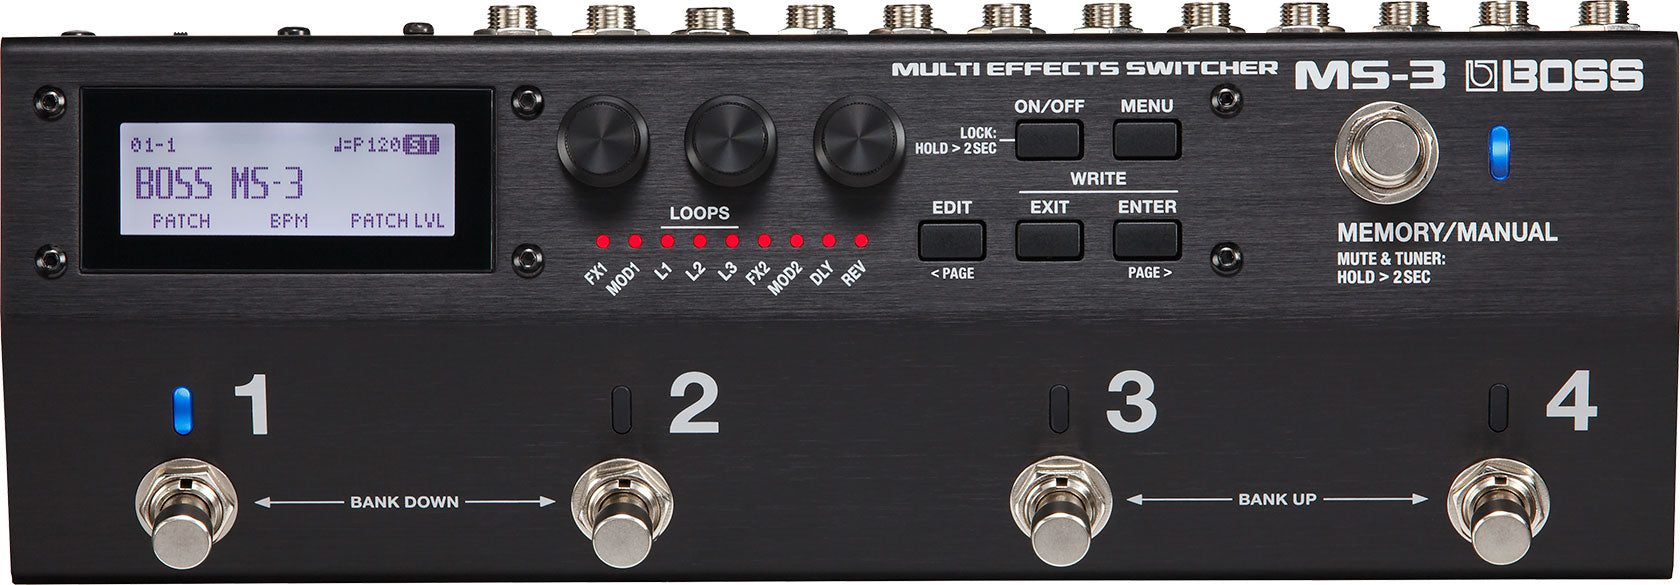 BOSS MS-3 - MULTI EFFECTS SWITCHER